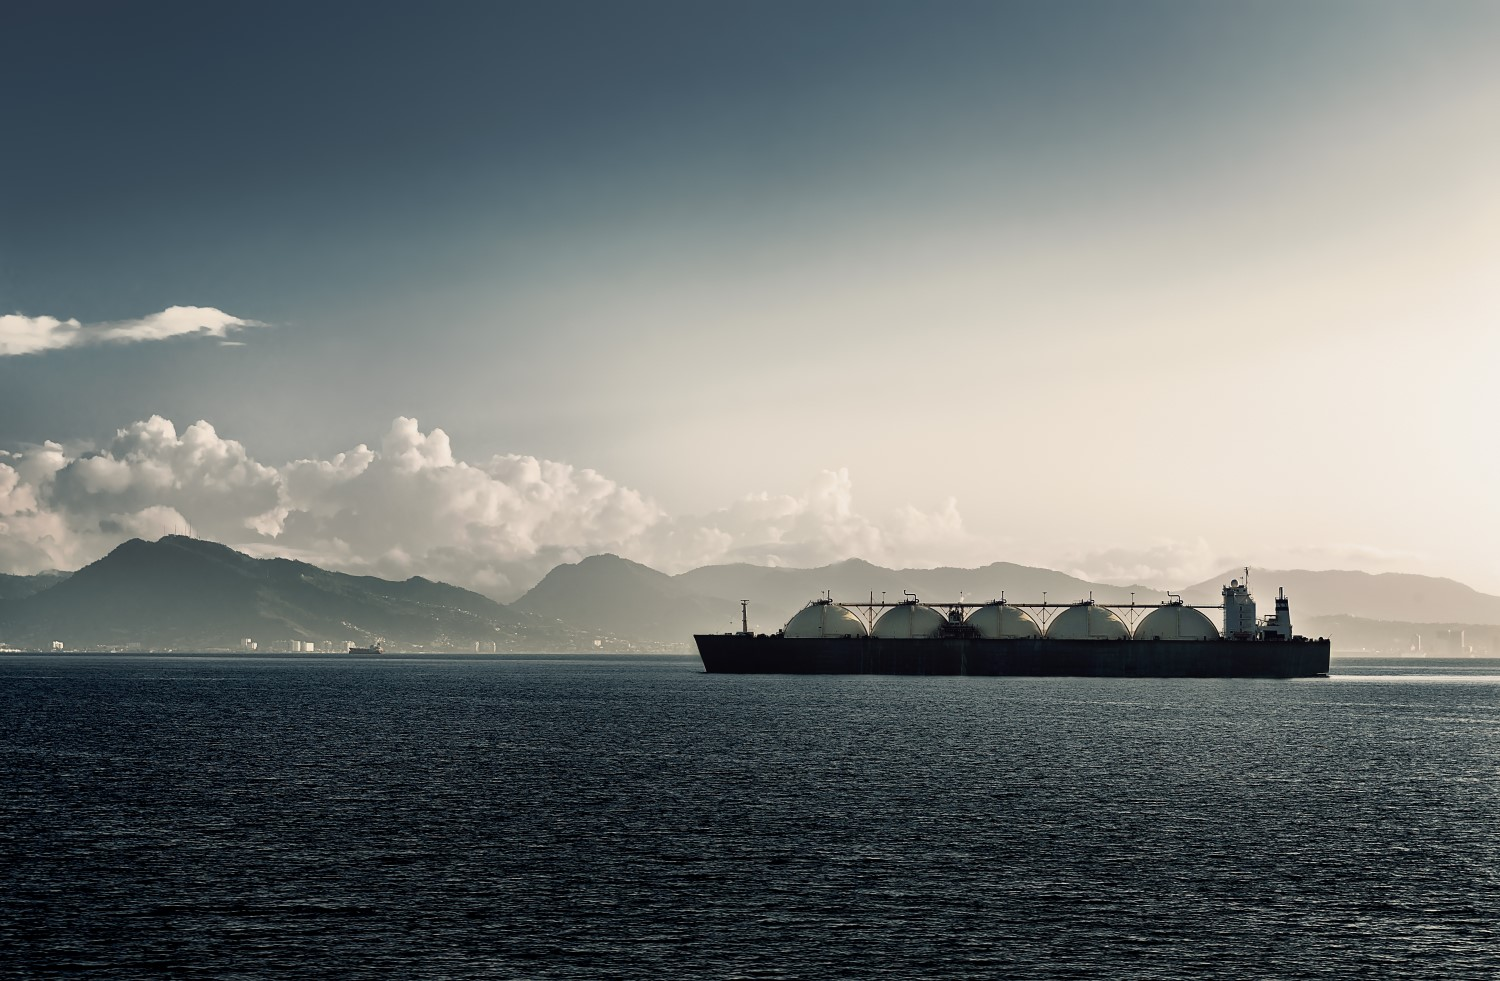 LNG Tanker in the Caribbean